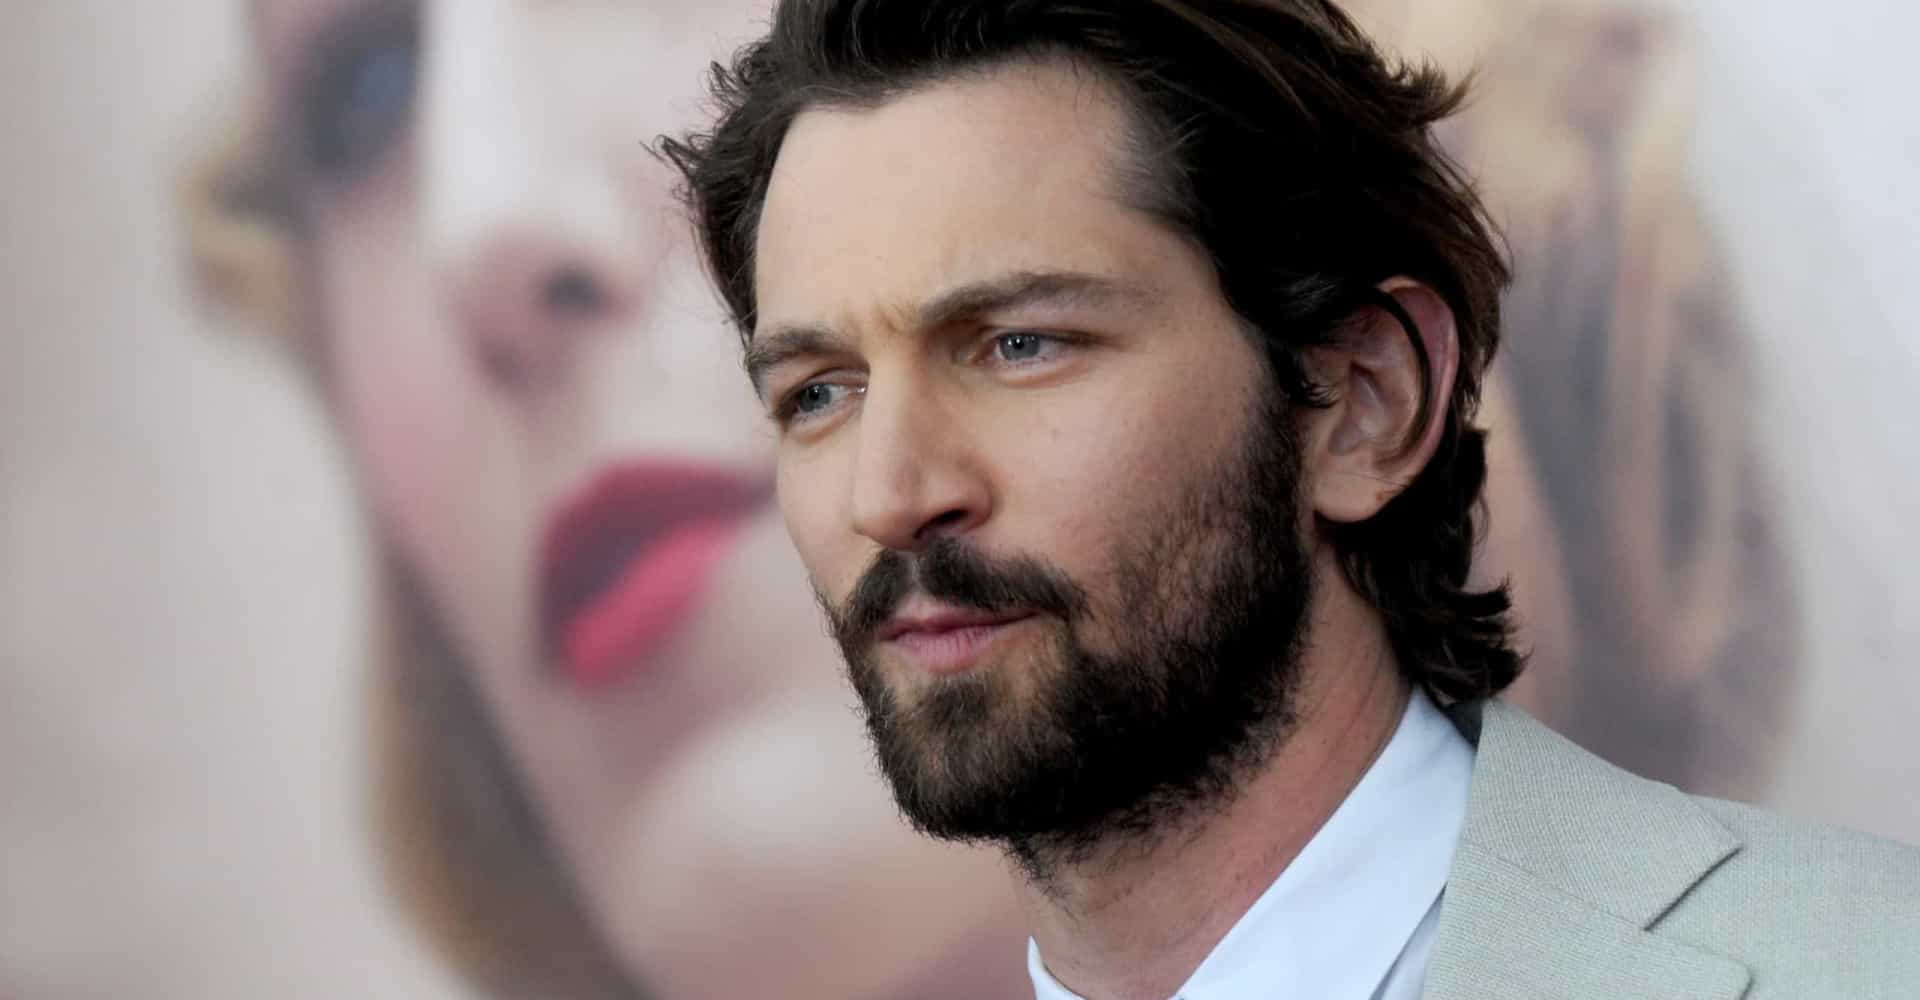 Groots in Hollywood: Michiel Huisman